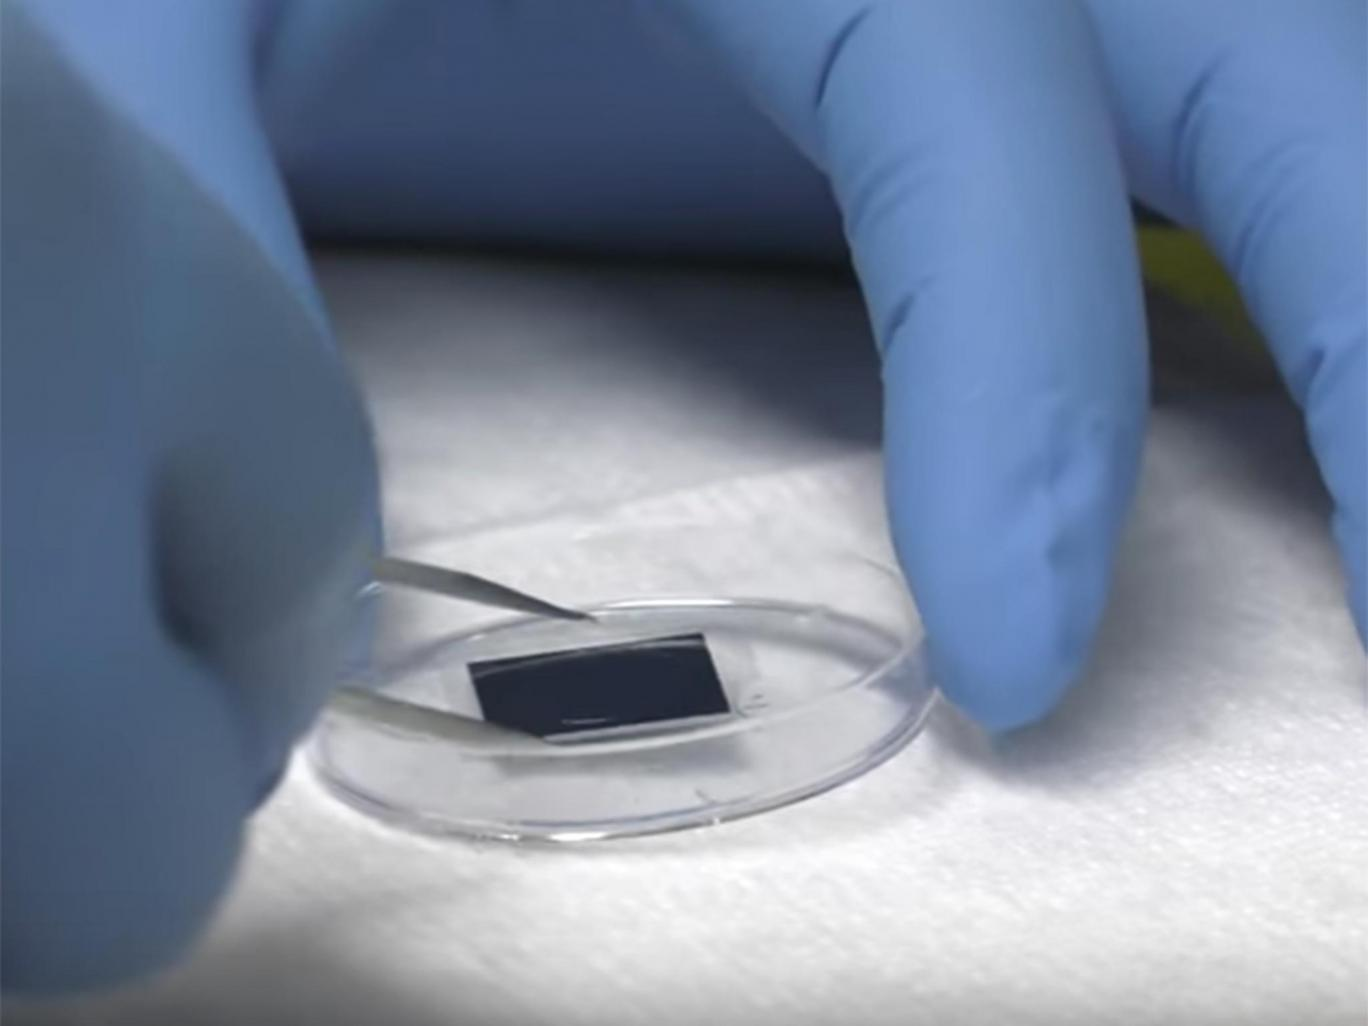 'Breakthrough' microchip technology helps heal wounds, nerves and organ damage